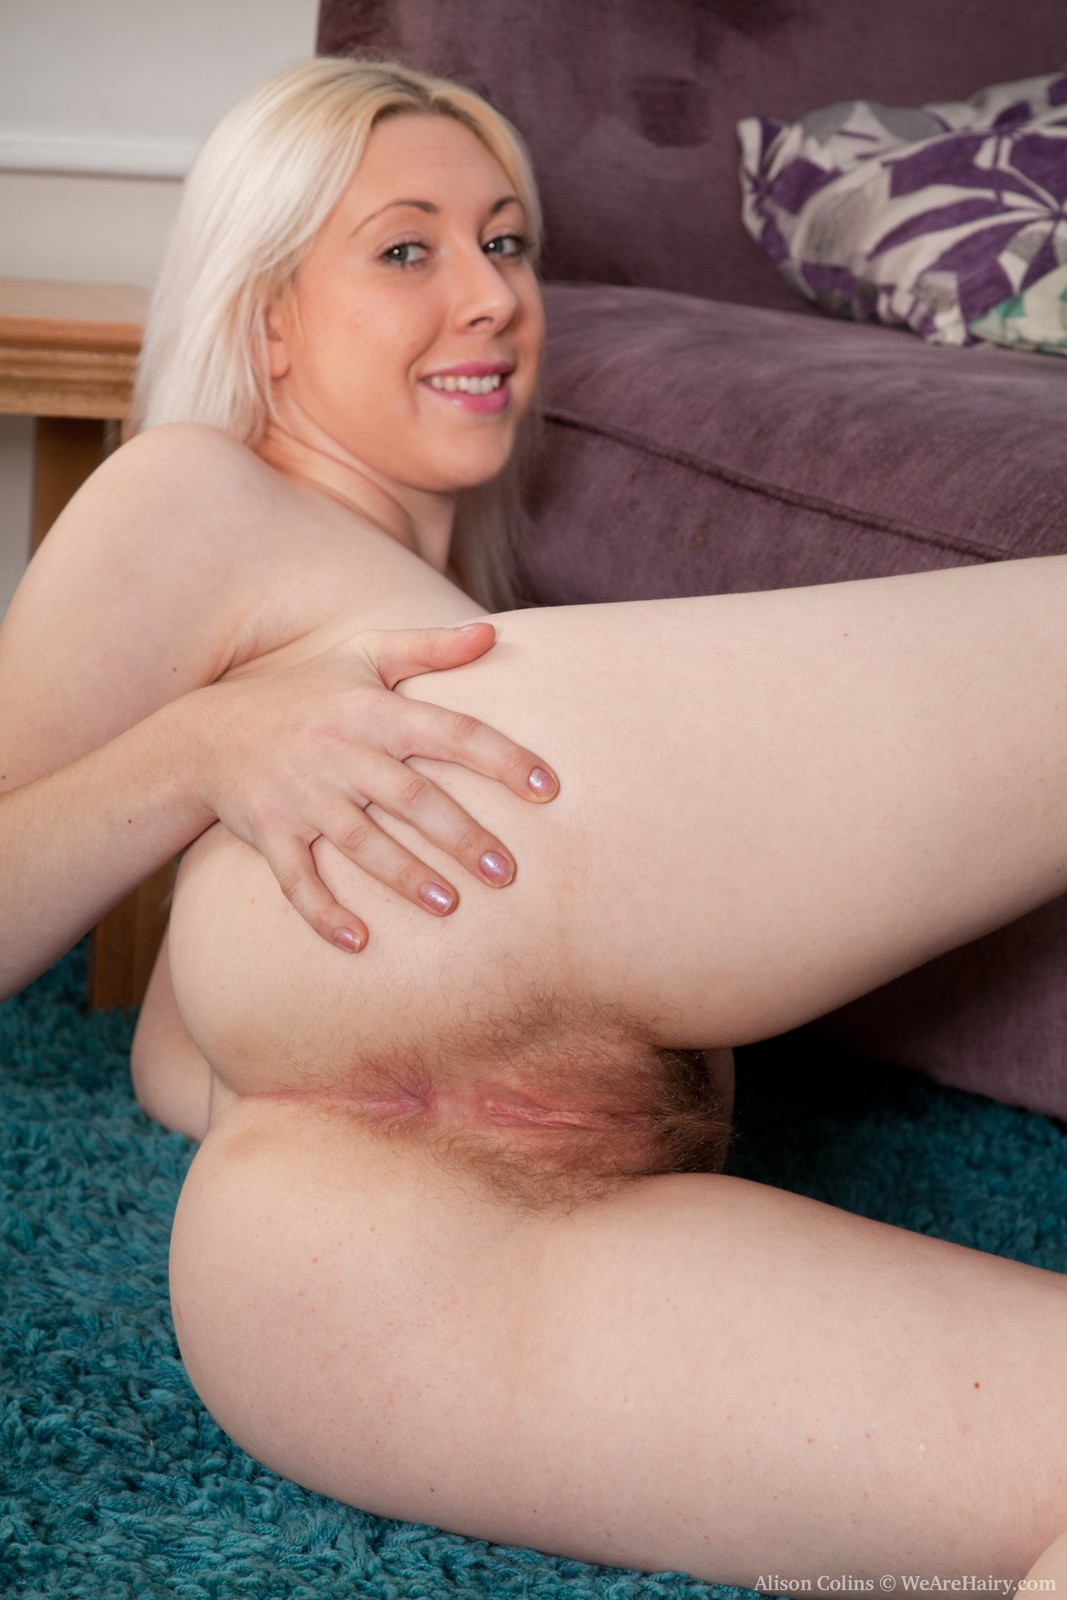 Can suggest Beautiful hairy pussy nude really. And